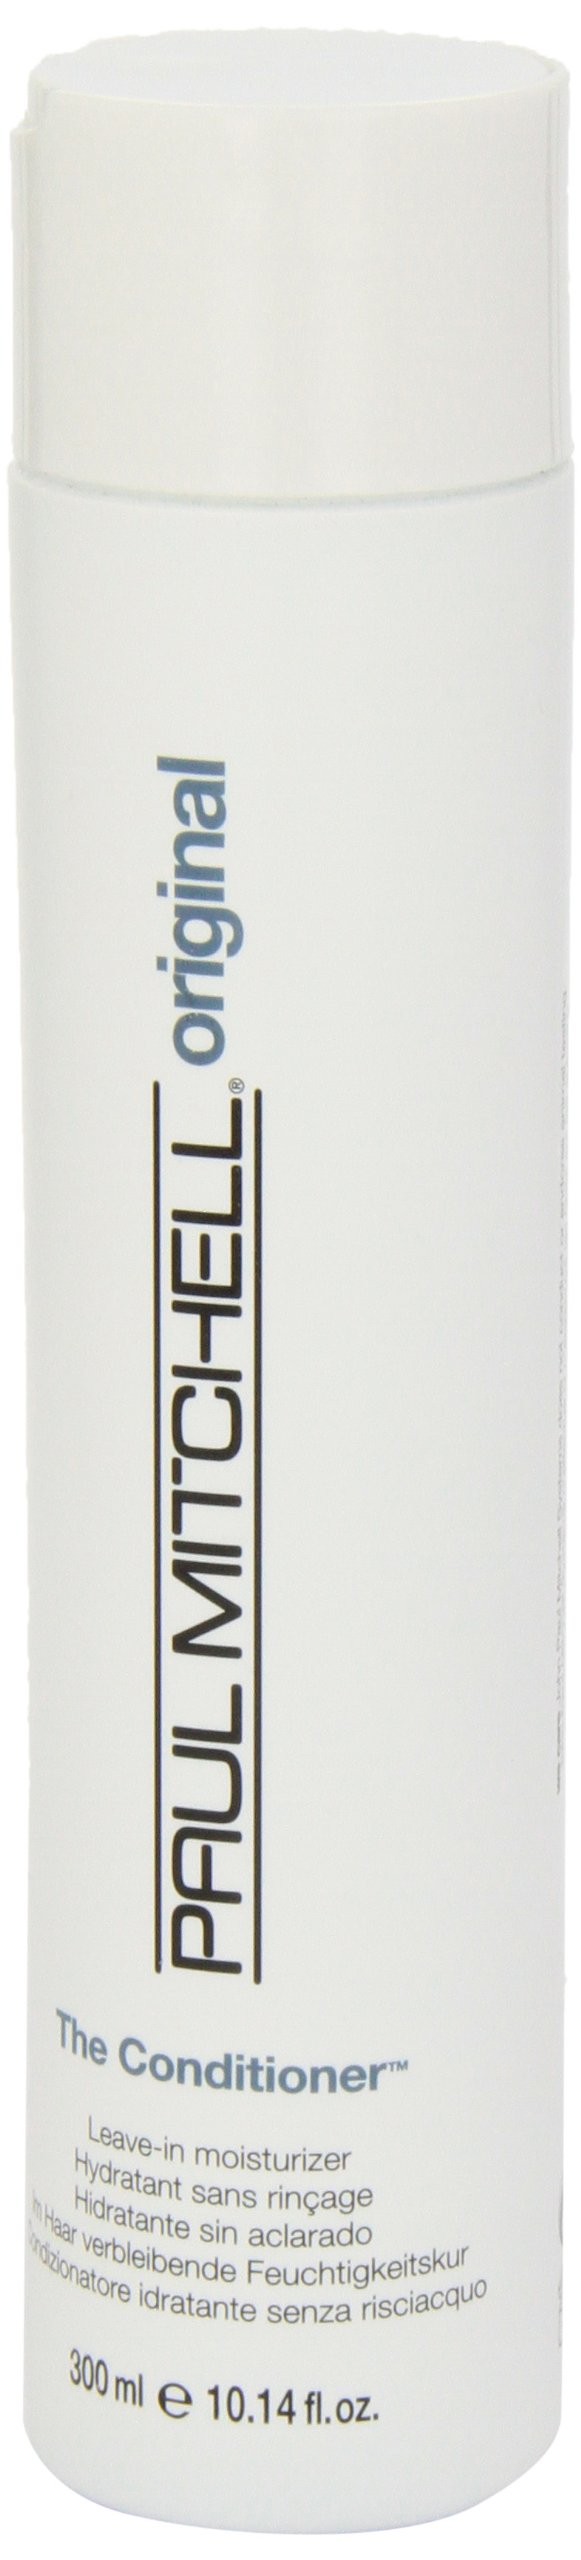 Paul Mitchell The Conditioner,10.14 Fl Oz by Paul Mitchell (Image #5)